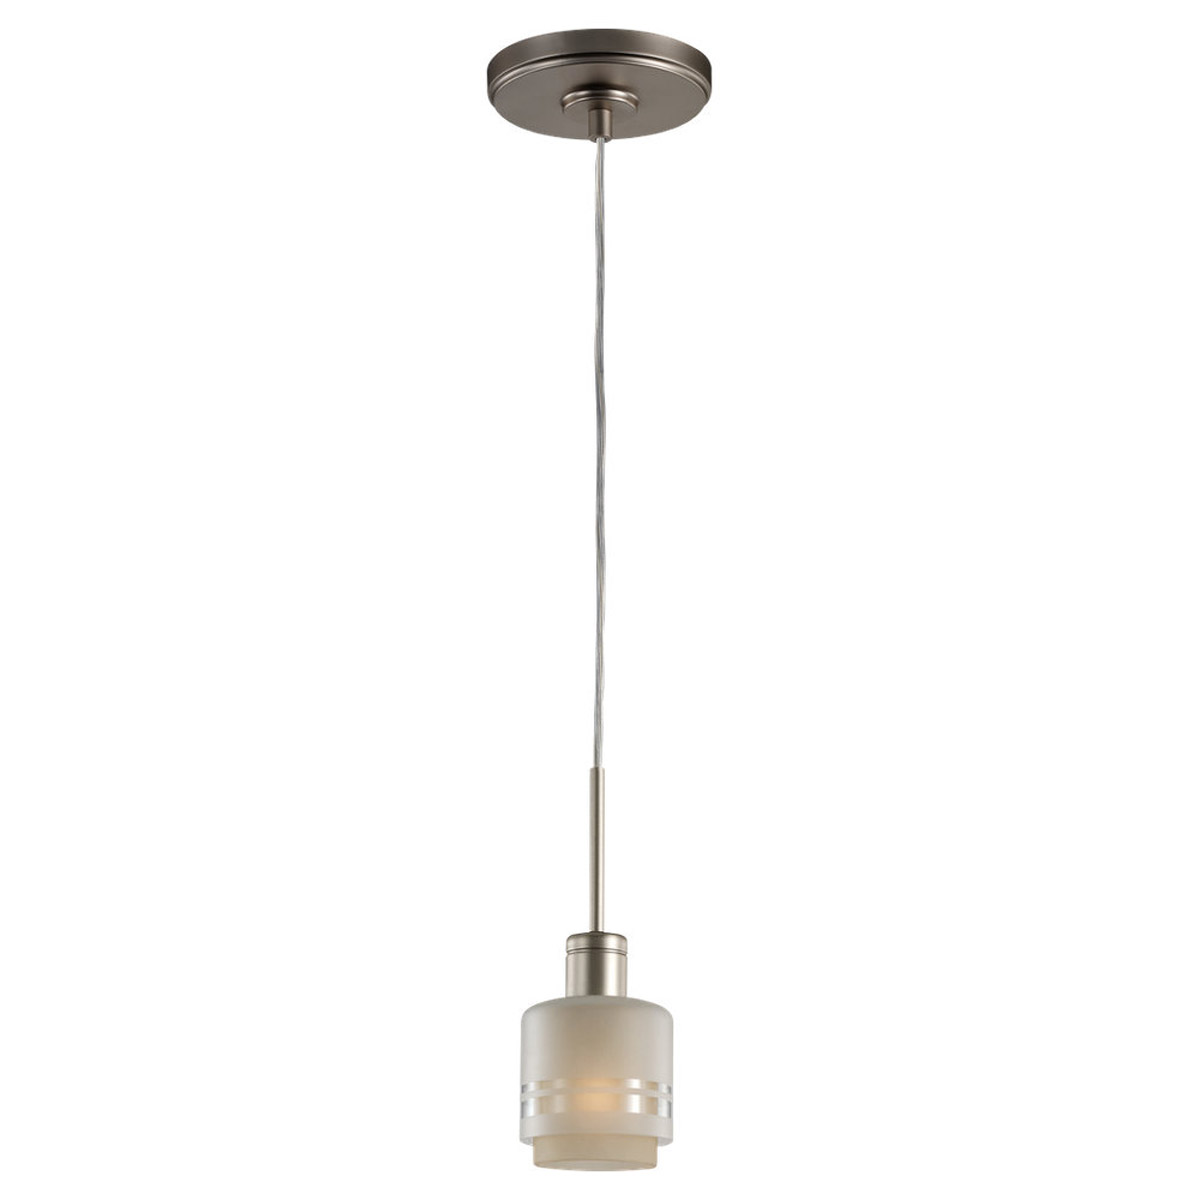 Sea Gull Lighting Groove 1 Light Pendant in Golden Pewter 61729-853